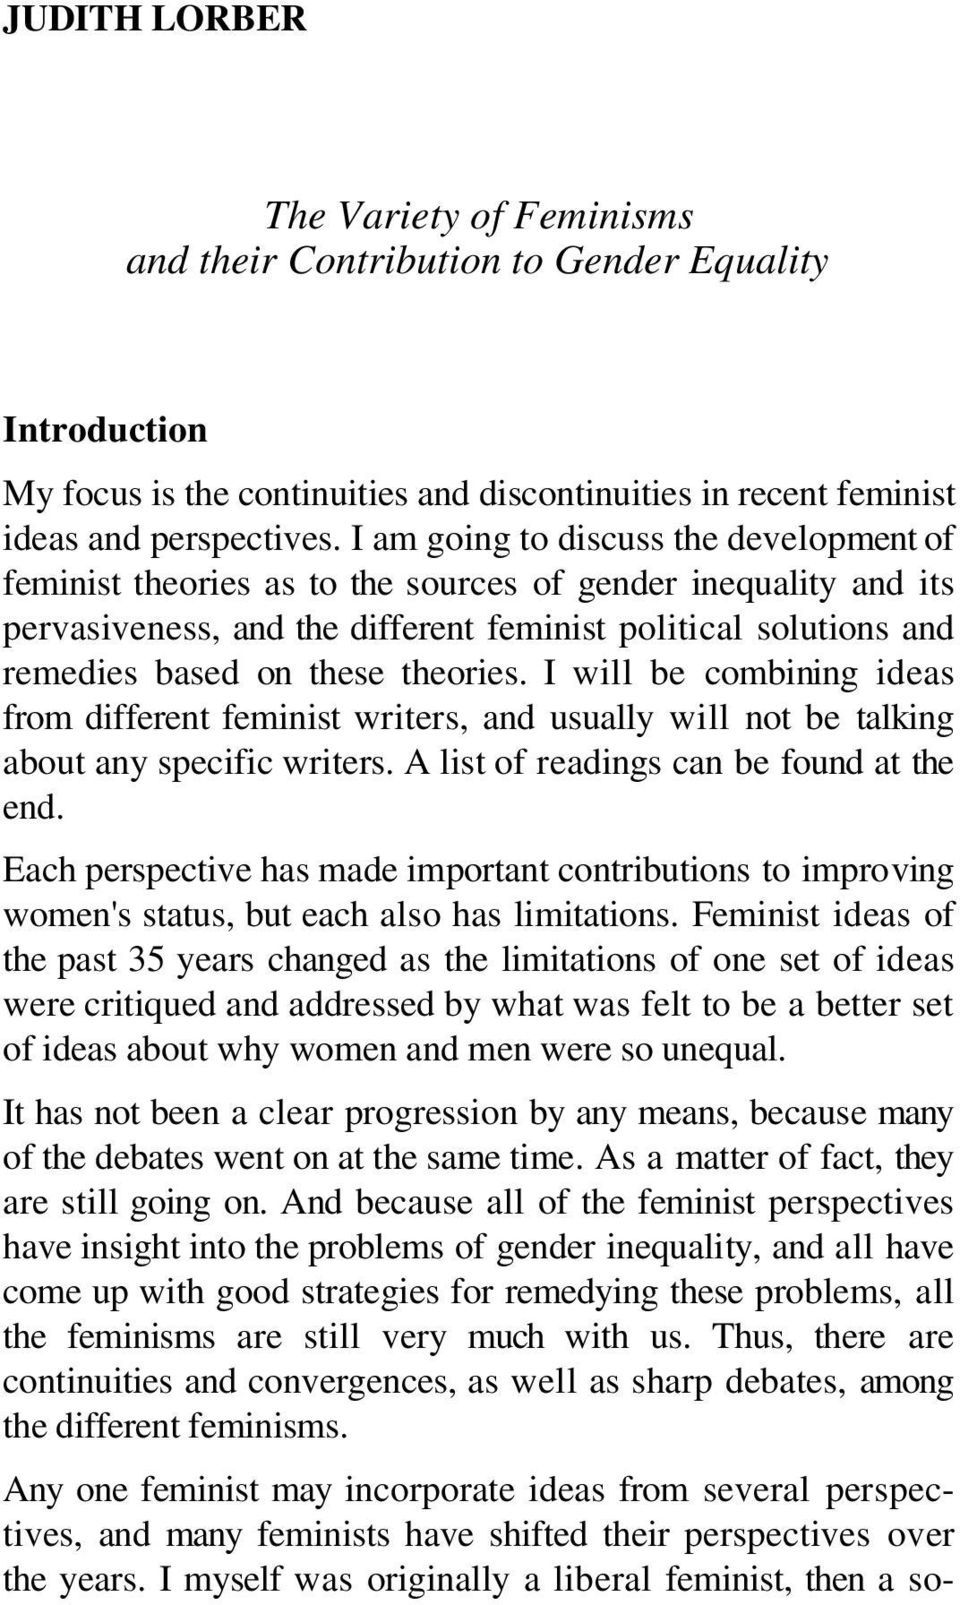 essay on equality of man and woman